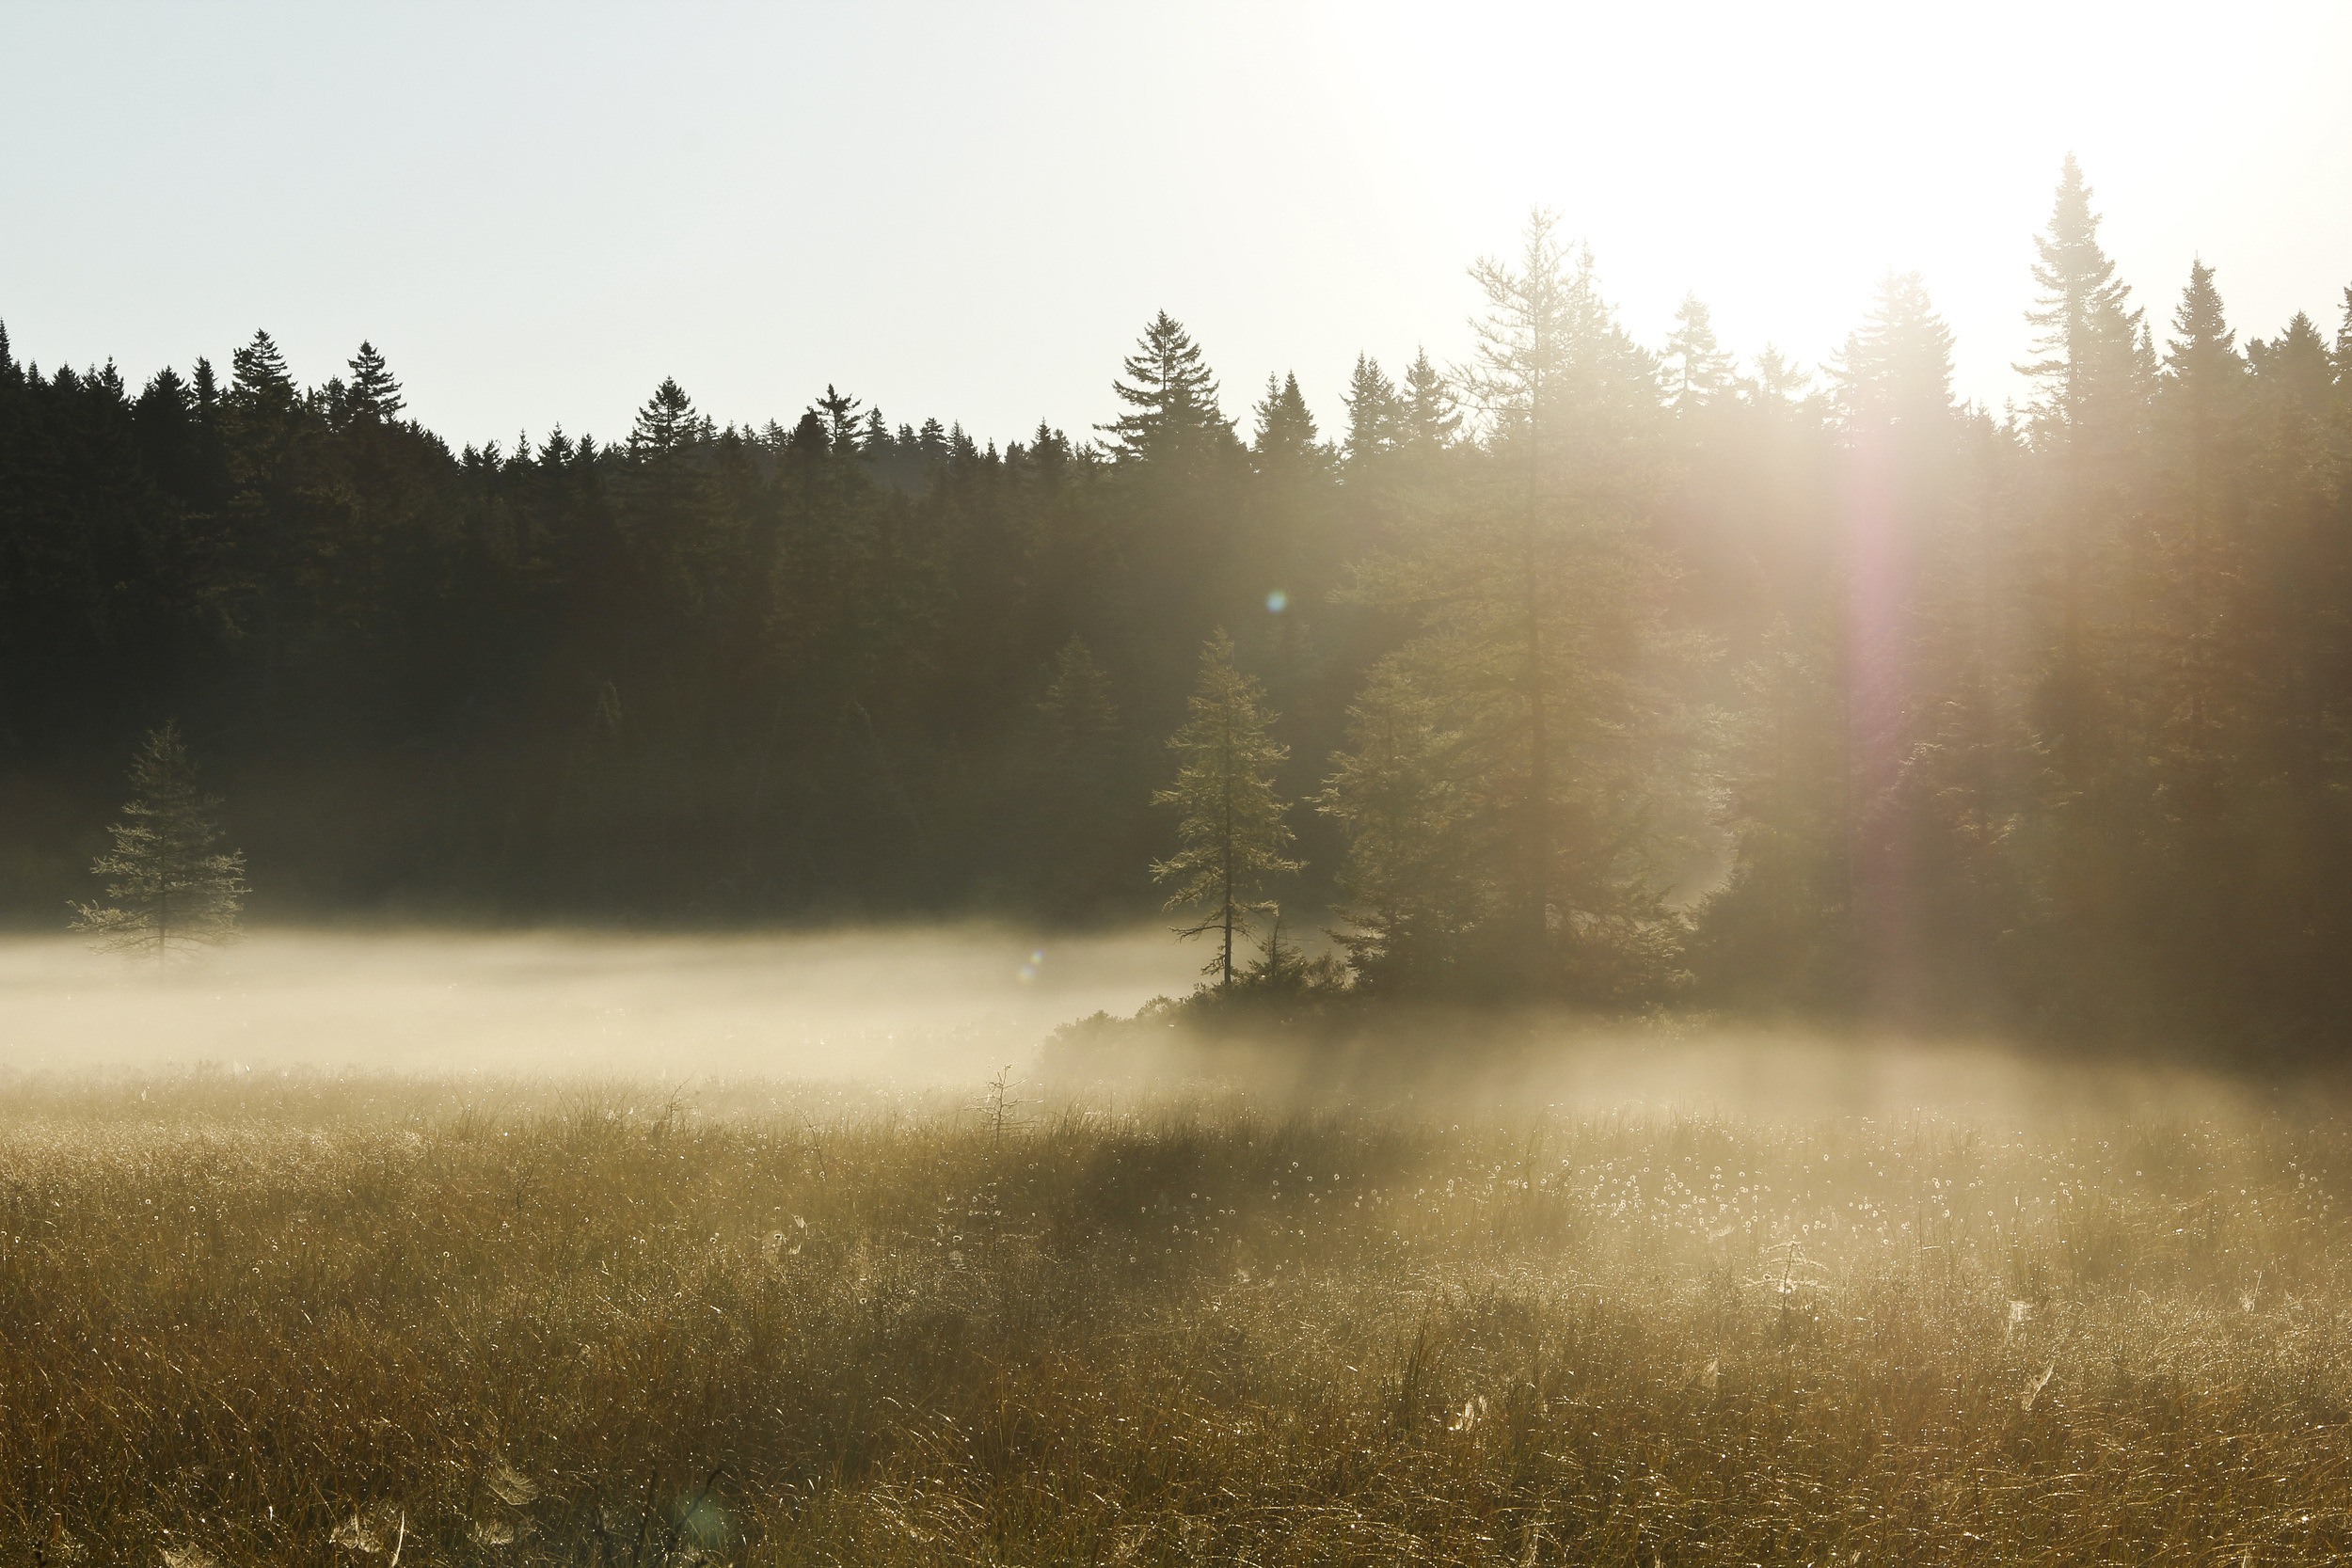 This open field filled with fog made for a surreal and tranquil morning.